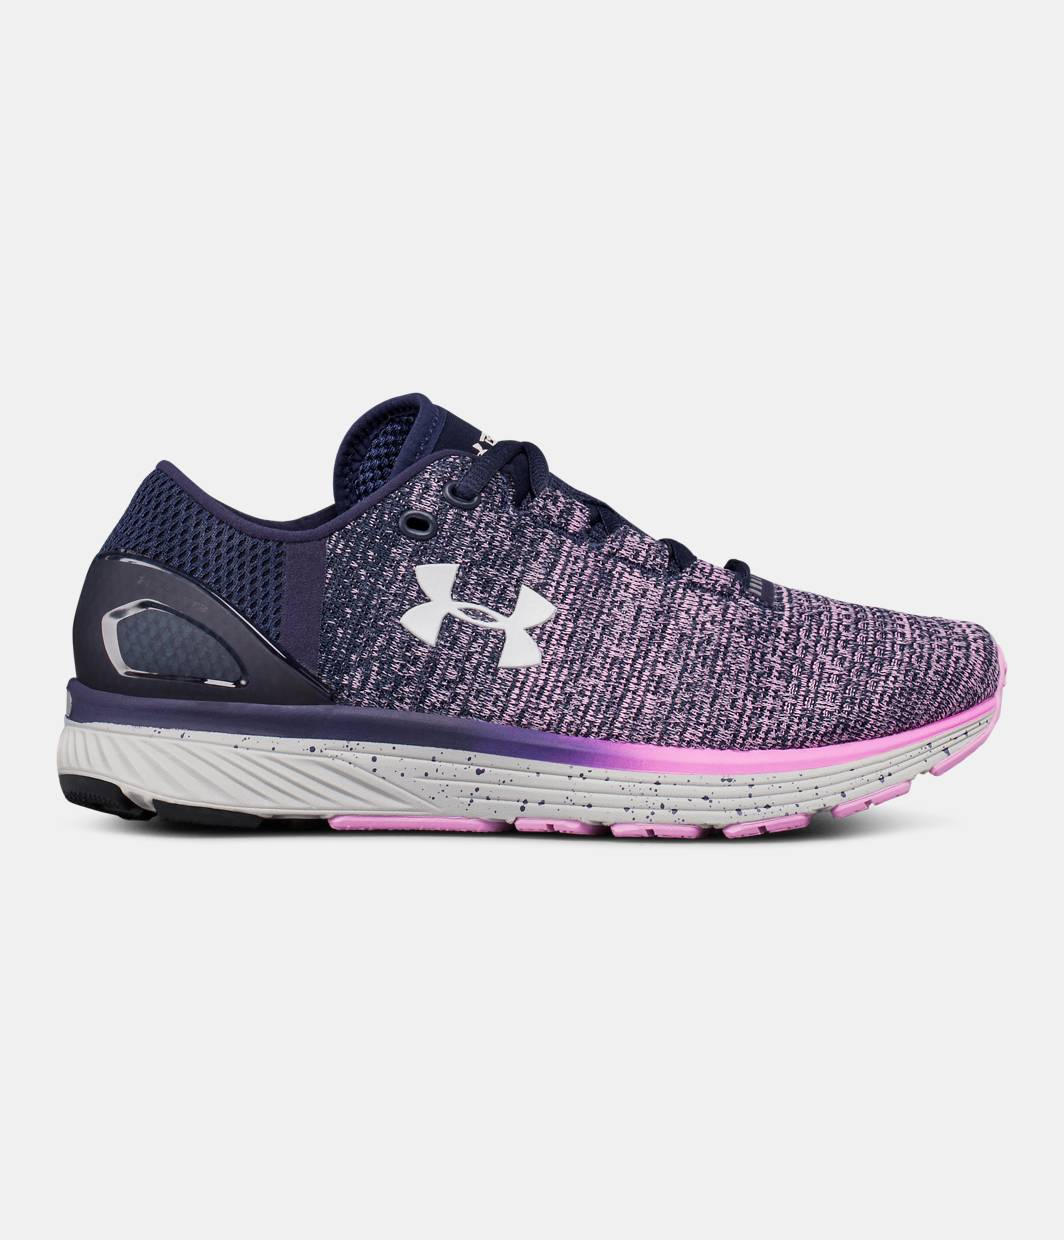 promo code 49a48 94619 Women s UA Charged Bandit 3 Running Shoes 3 Colors Available  56.99 to   64.99